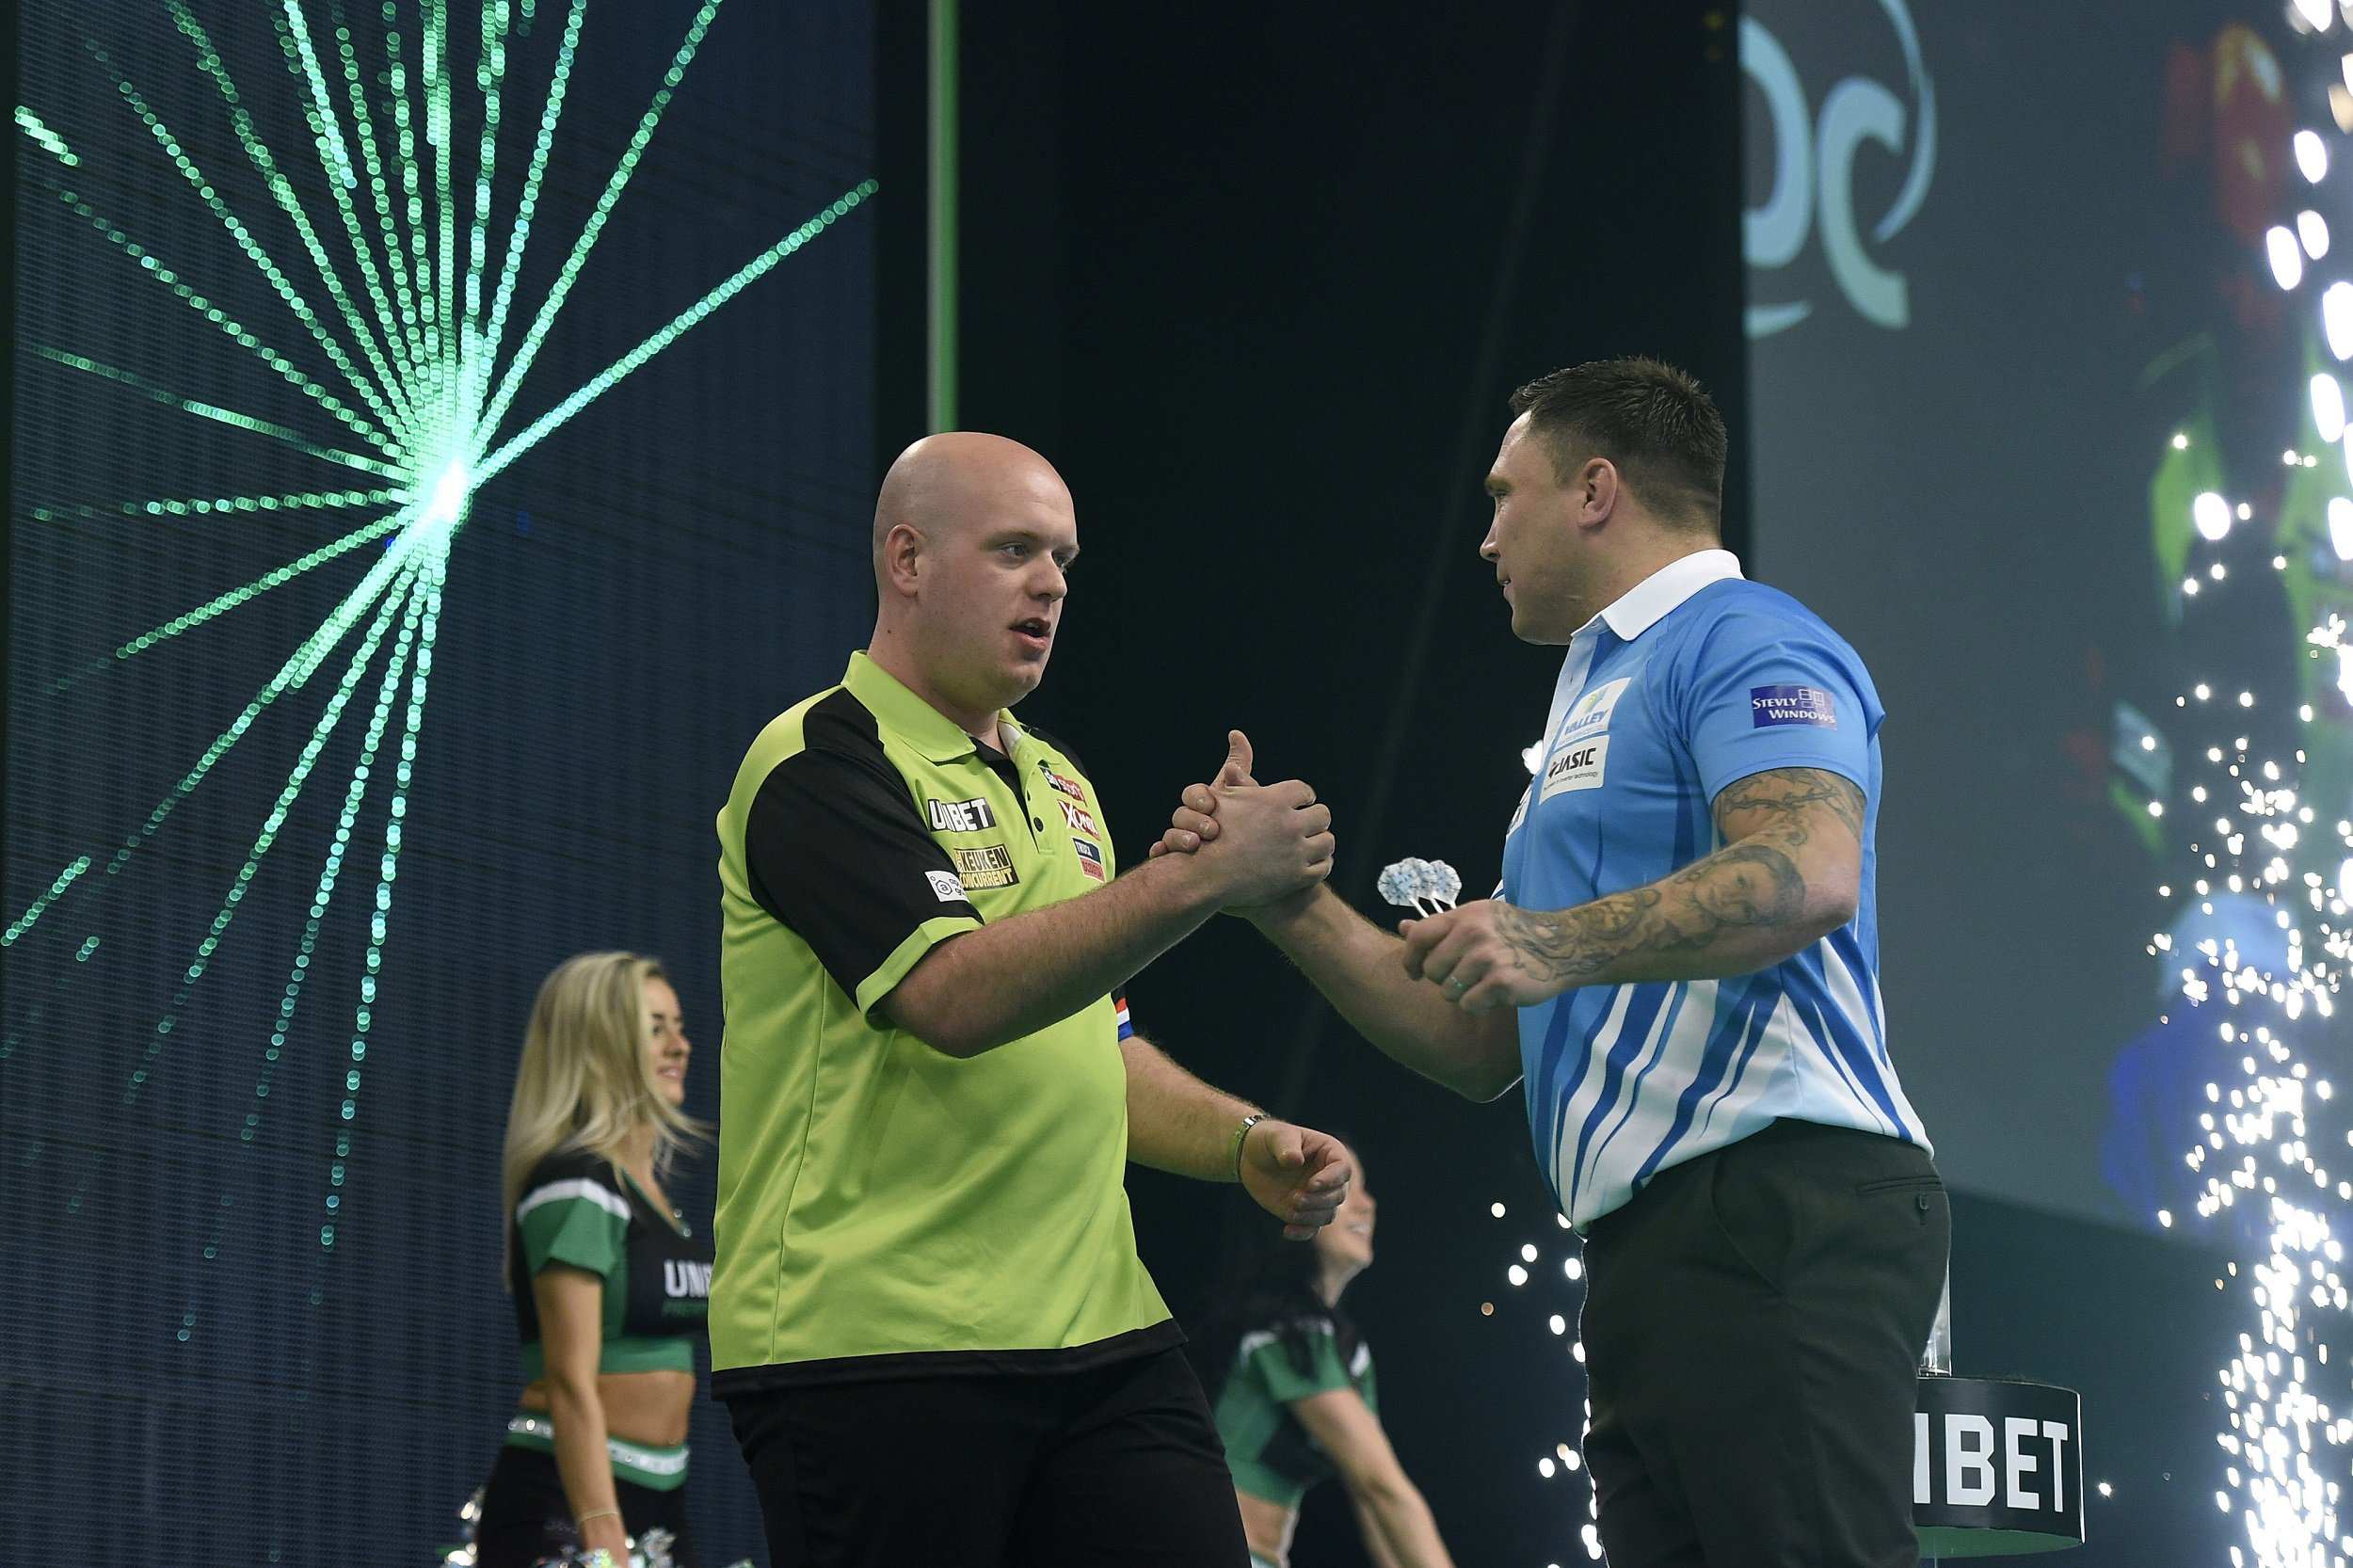 Gerwyn Price says 'I will beat you one day' as Michael van Gerwen snatches Premier League draw